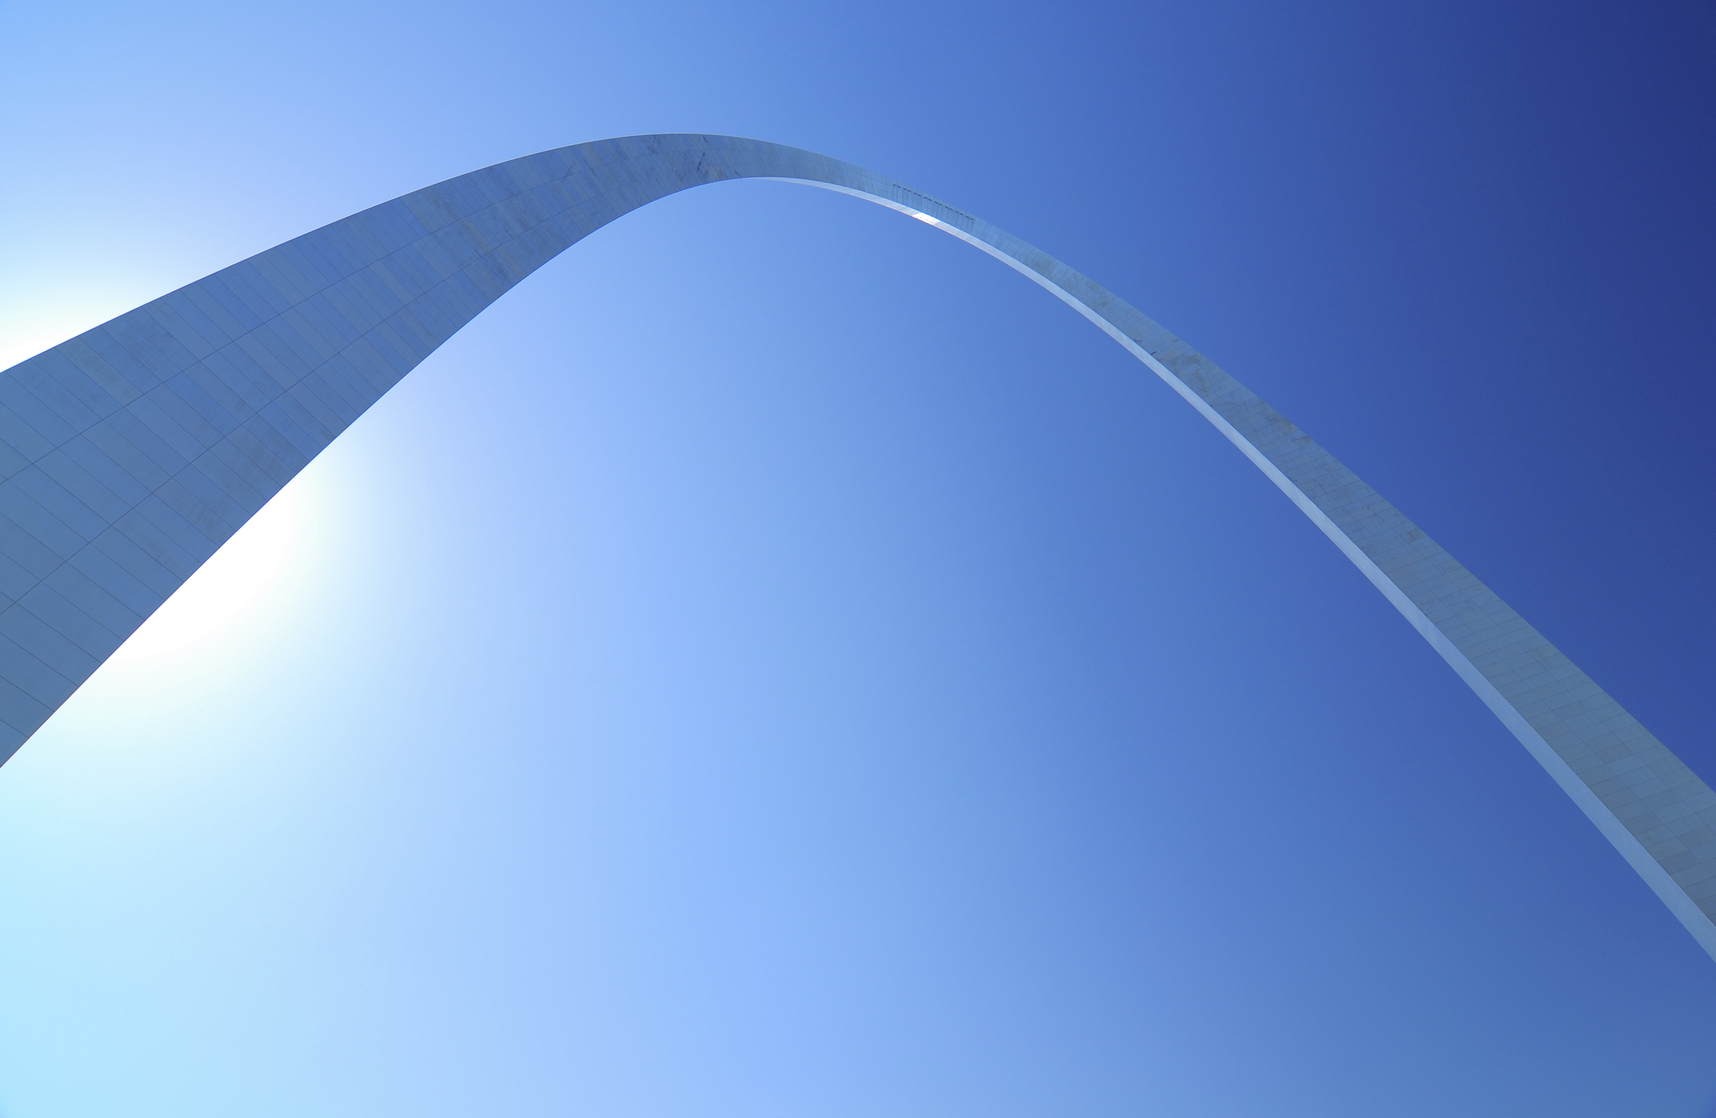 A dramatic wide angle view of the Gateway Arch in Saint Louis, with the arch backlit against the sun.